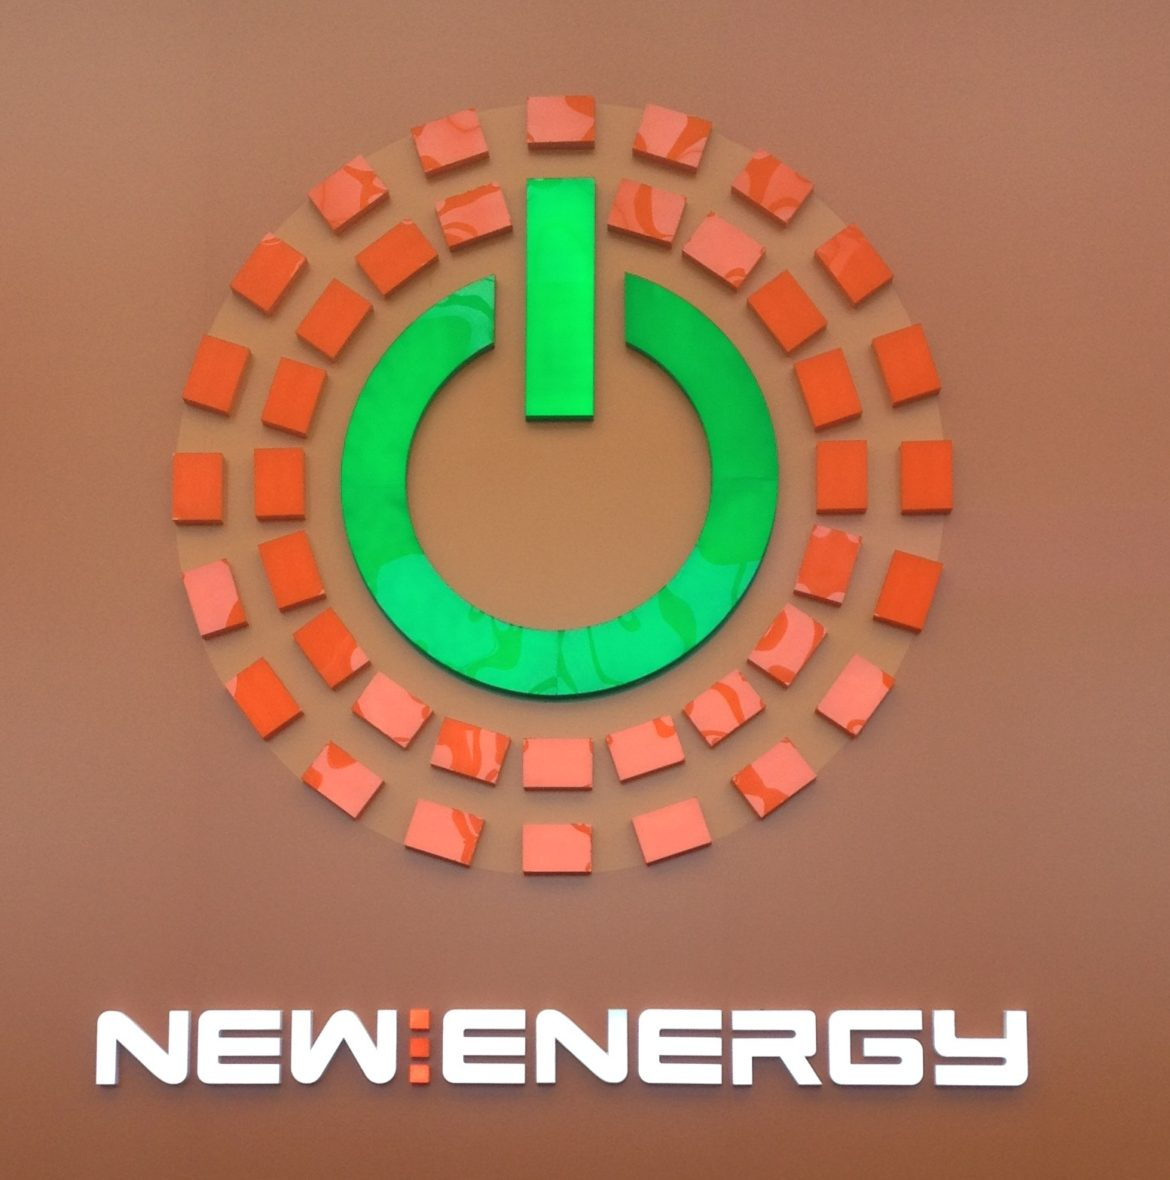 EnergySolaris in TOP 100 global startups to pitch at NEWENERGY Astana!